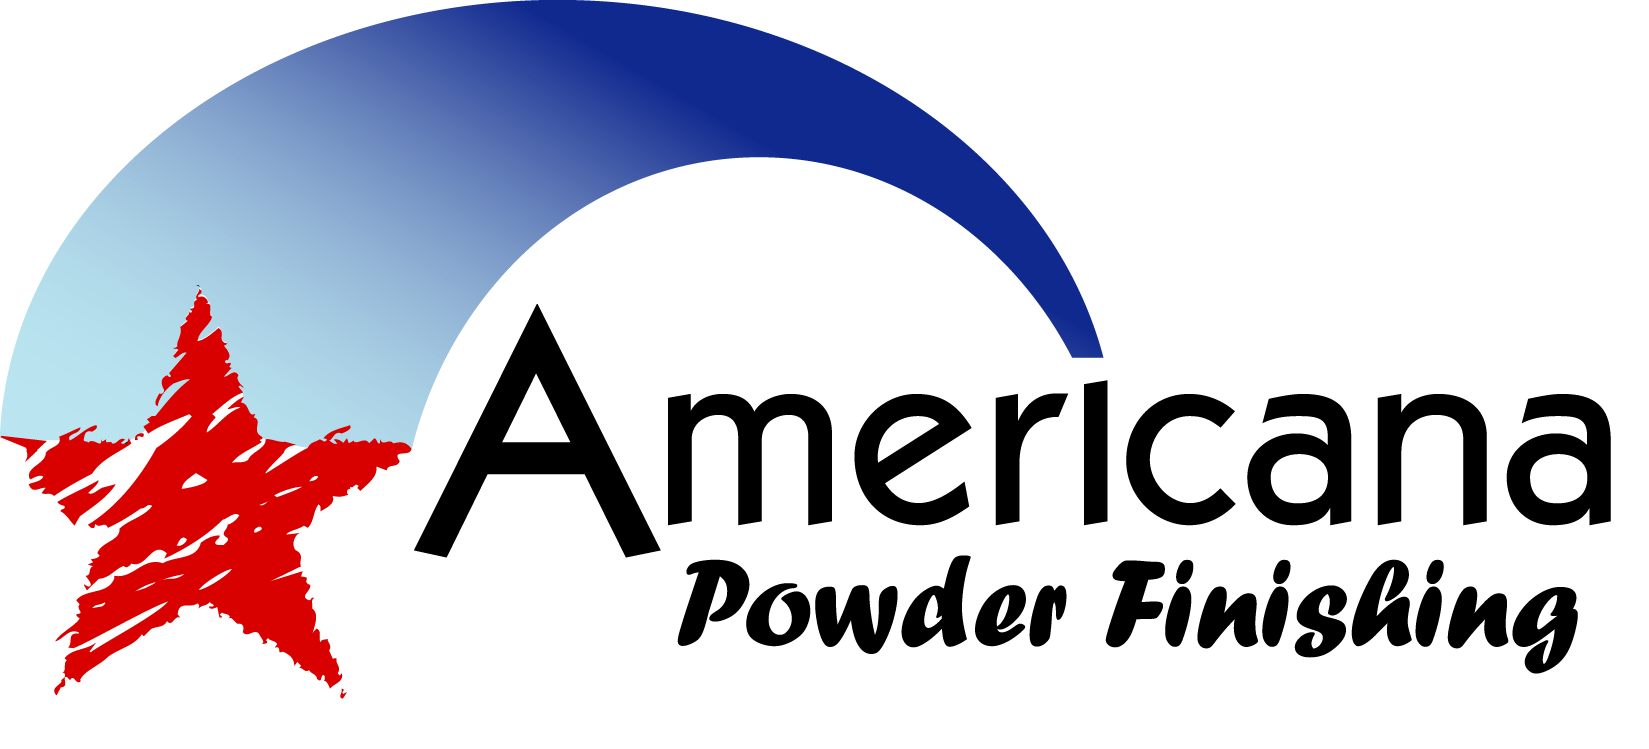 Americana Powder Finishing